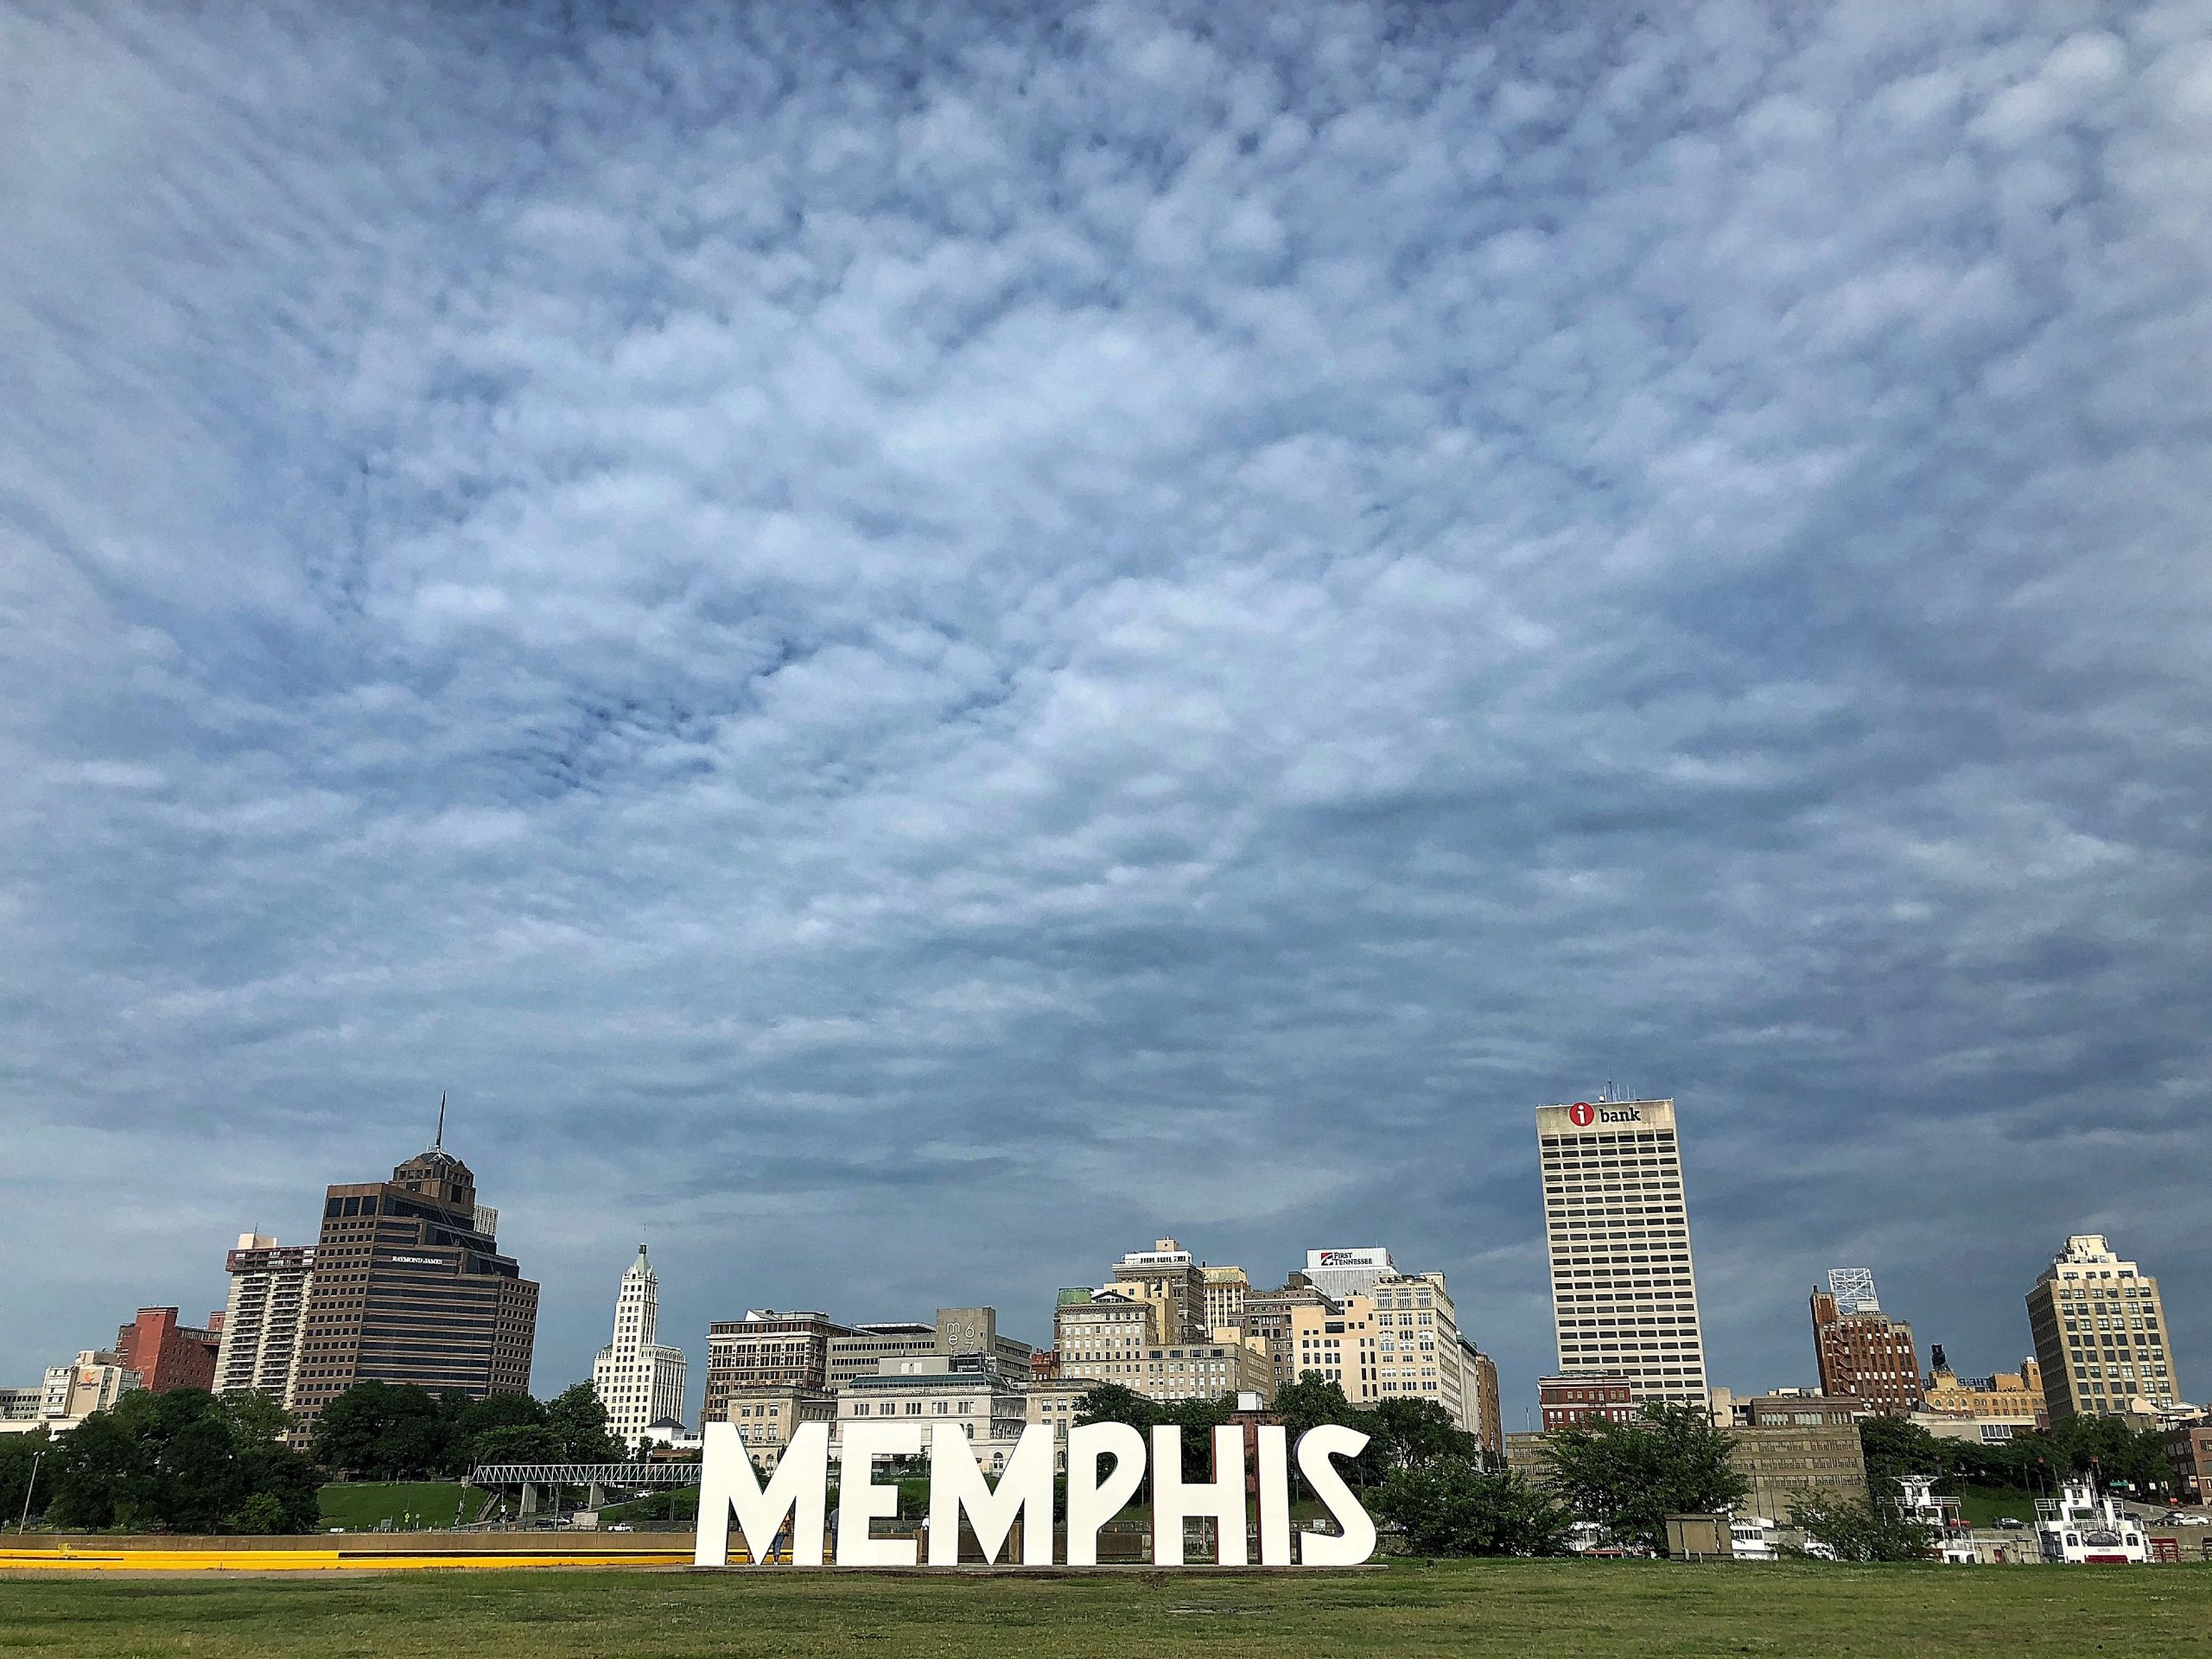 What Exactly is Memphis Known For?